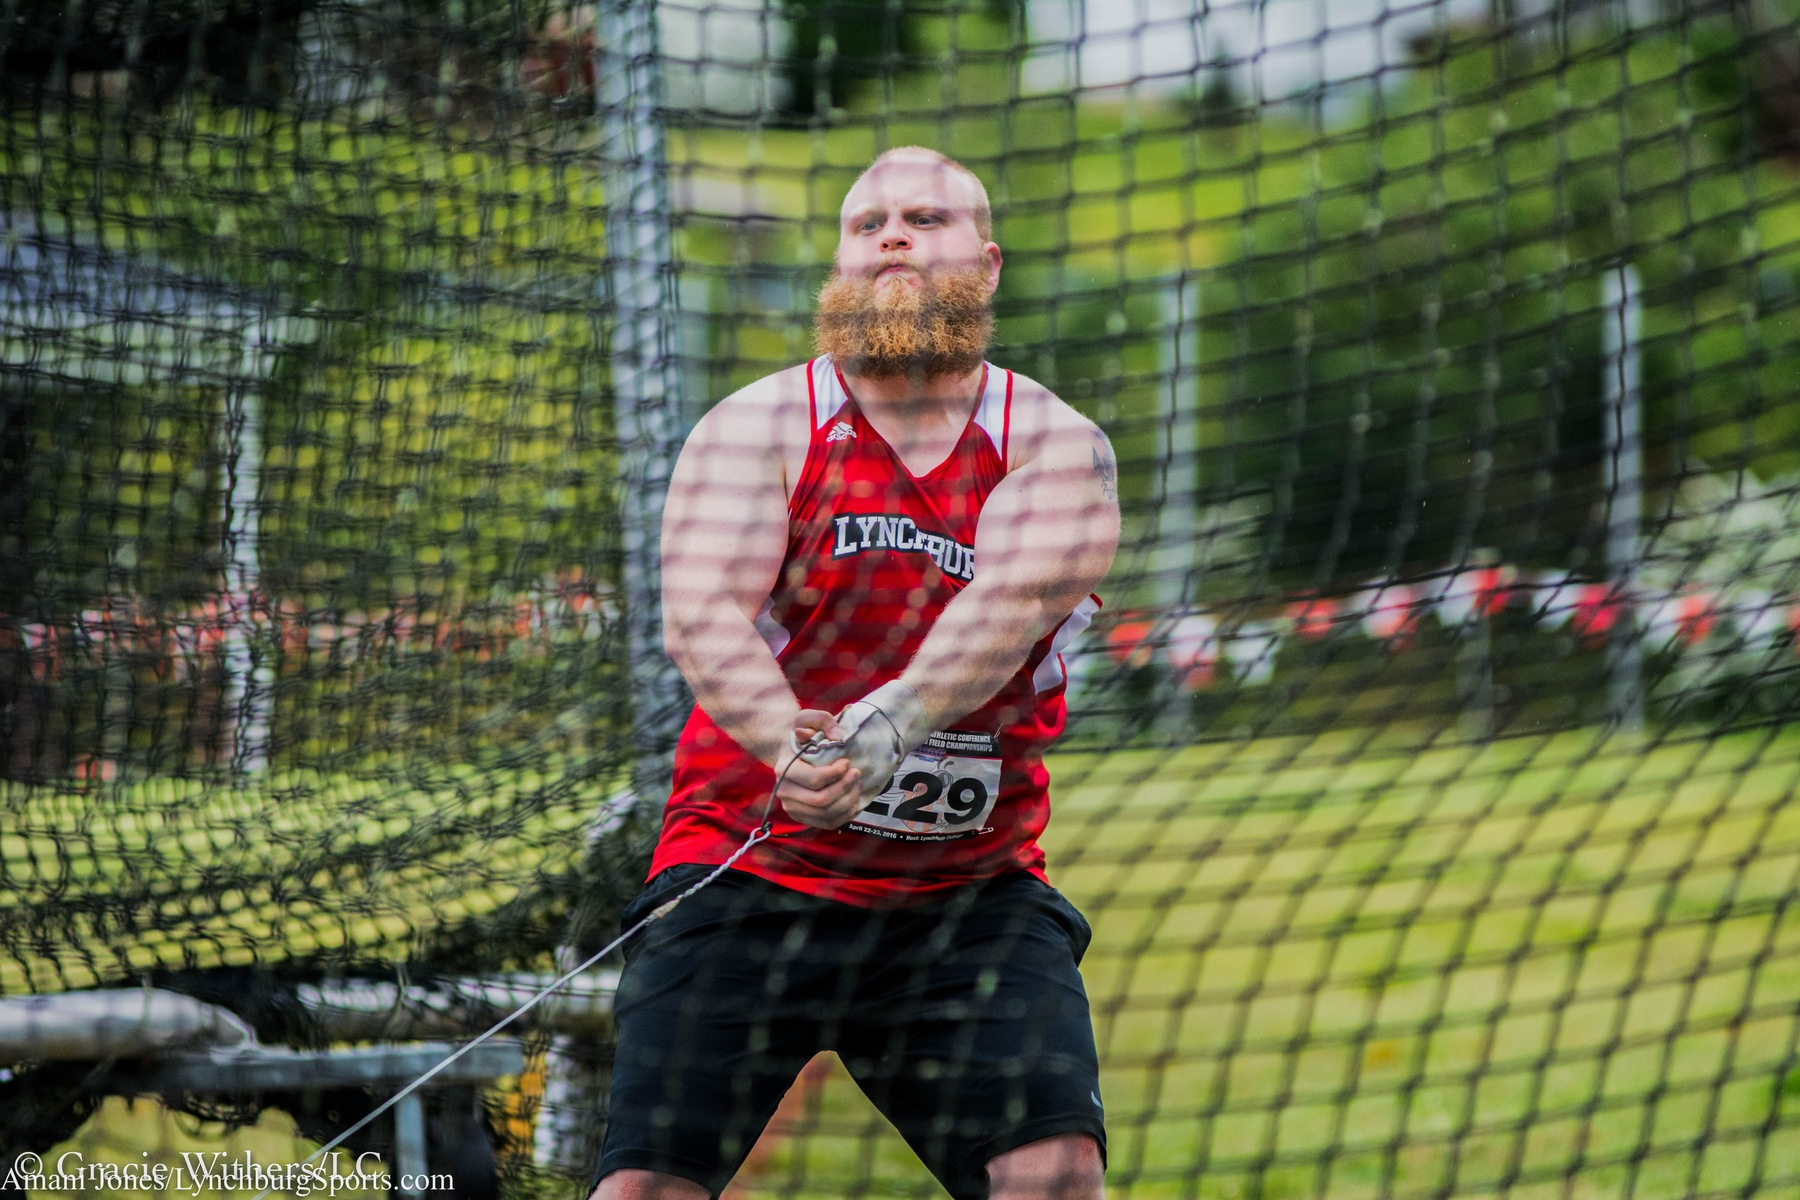 Evan Griffey throws the weight at an outdoor meet last year.